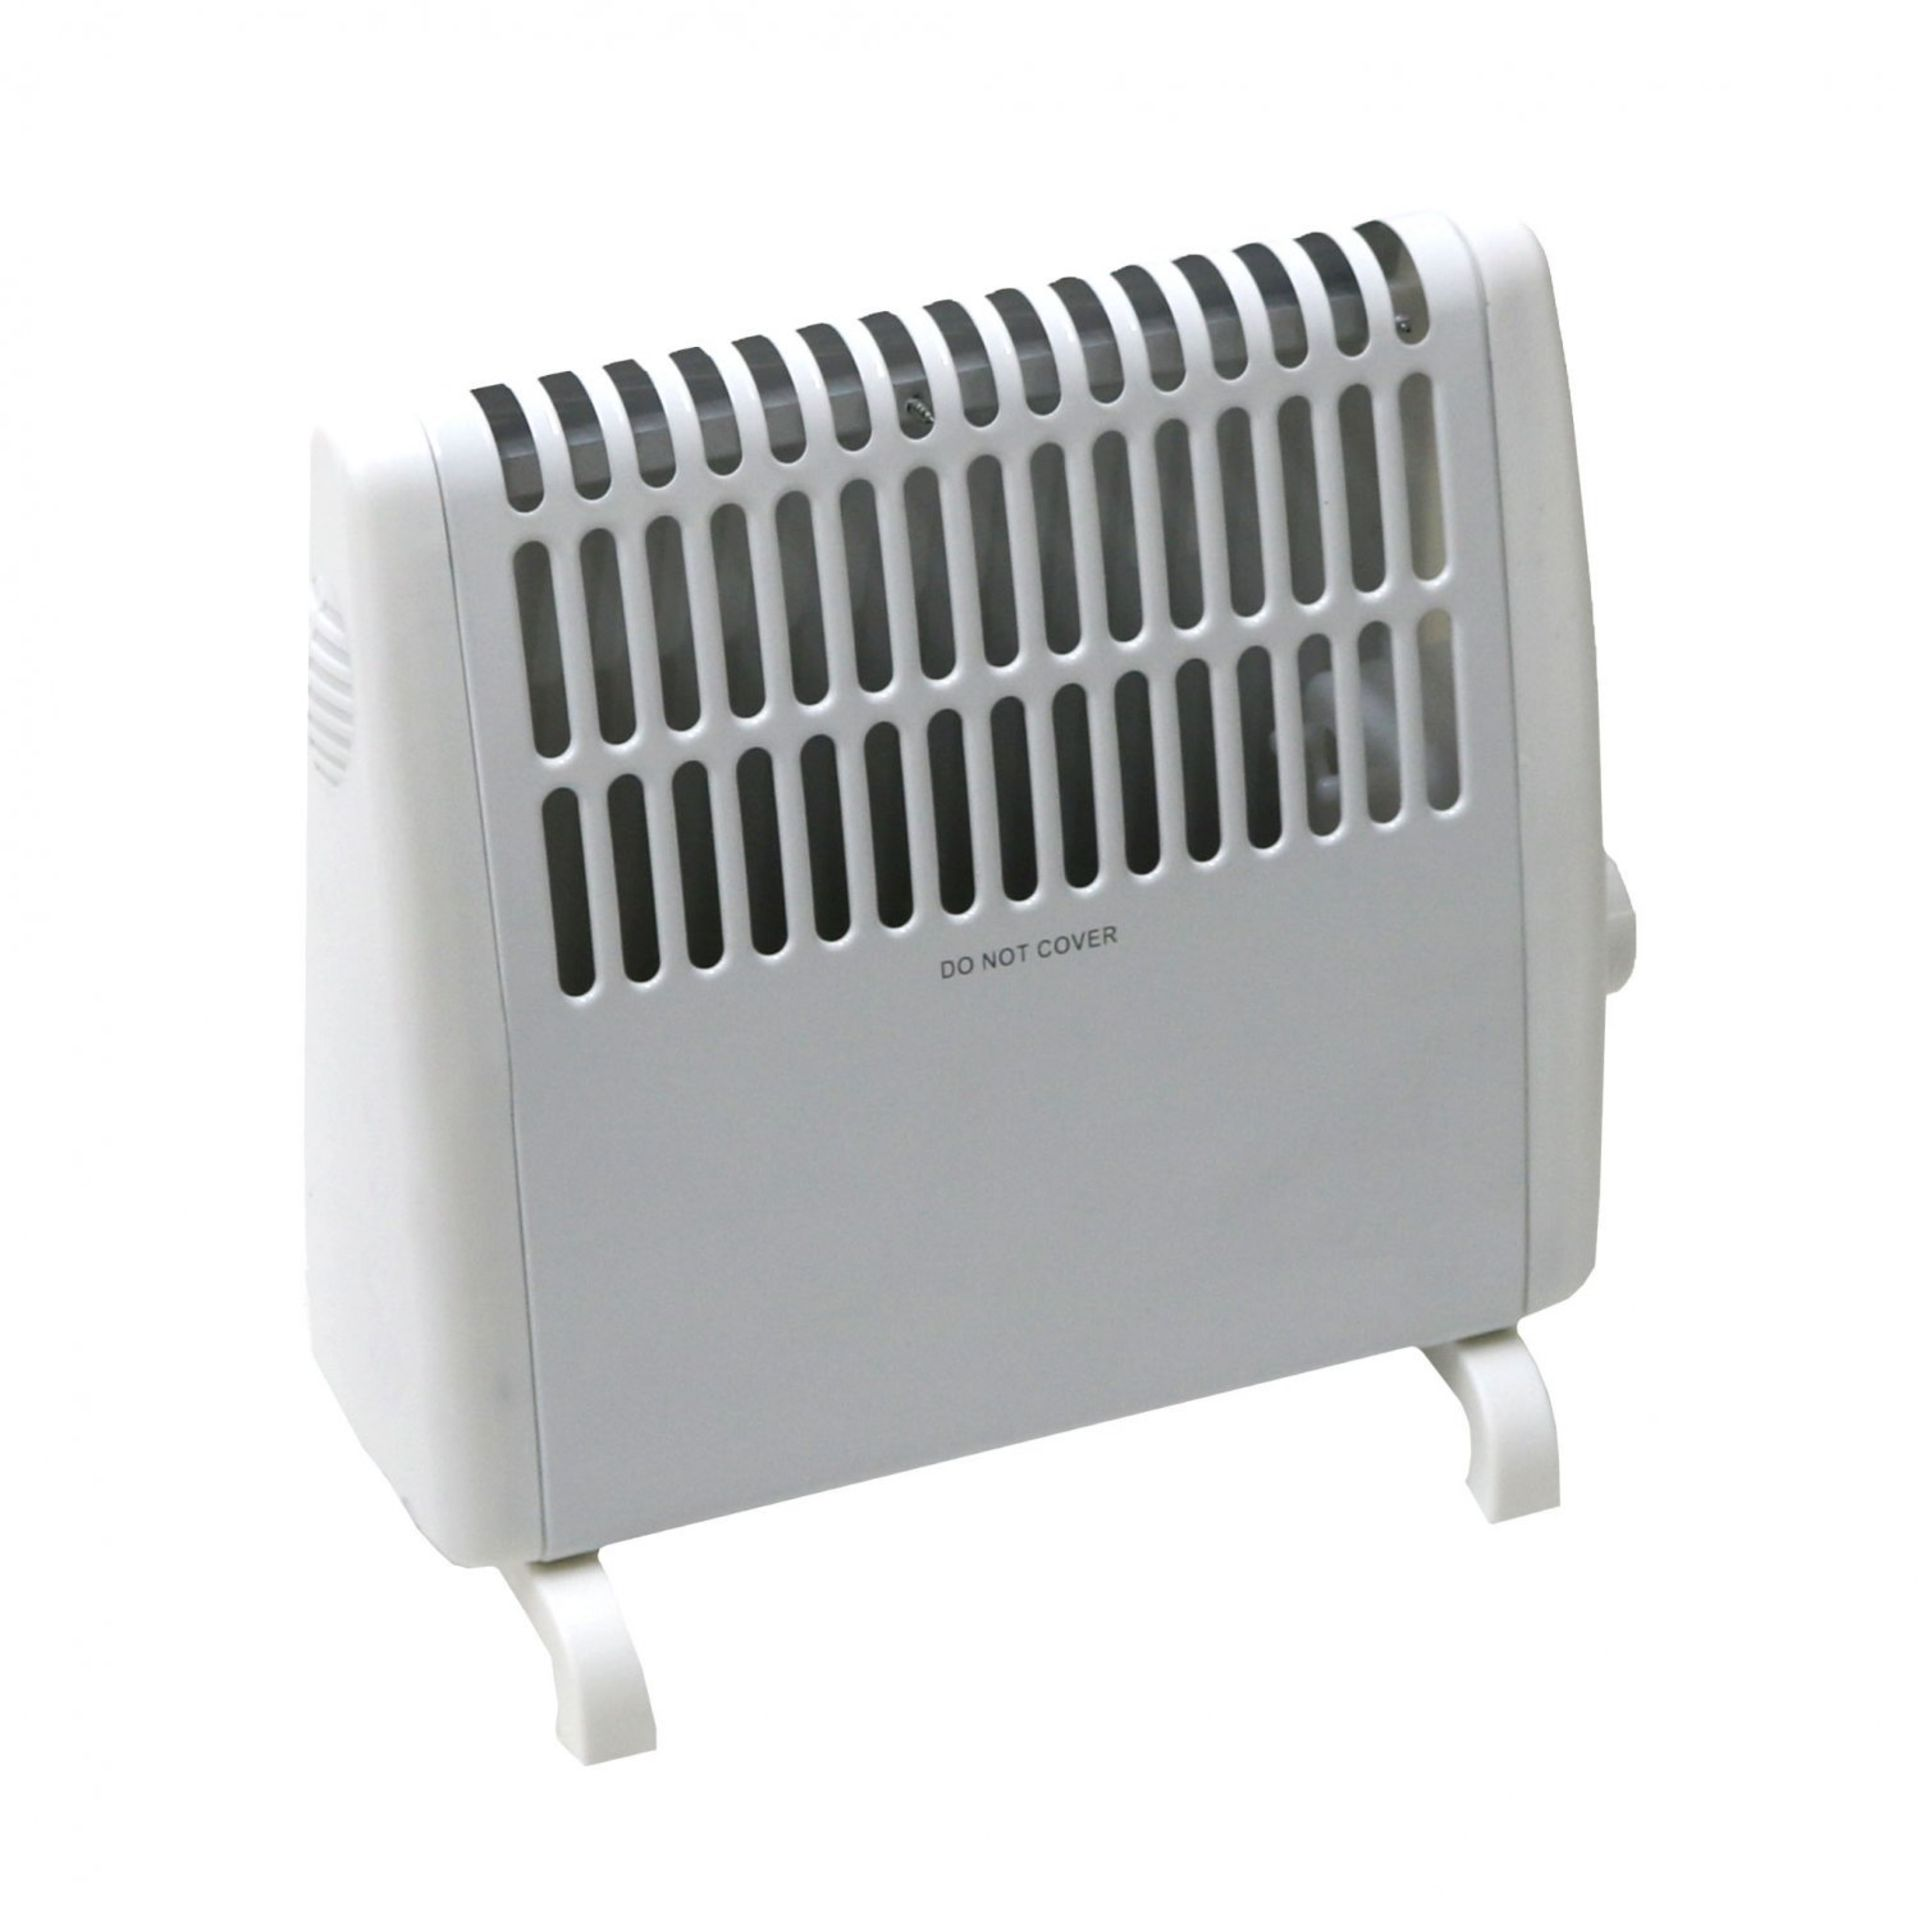 Lot 36 - (RU25) 450W Frost Electric Convector Heater Free Standing. 450W Frost Electric Convector Heater...